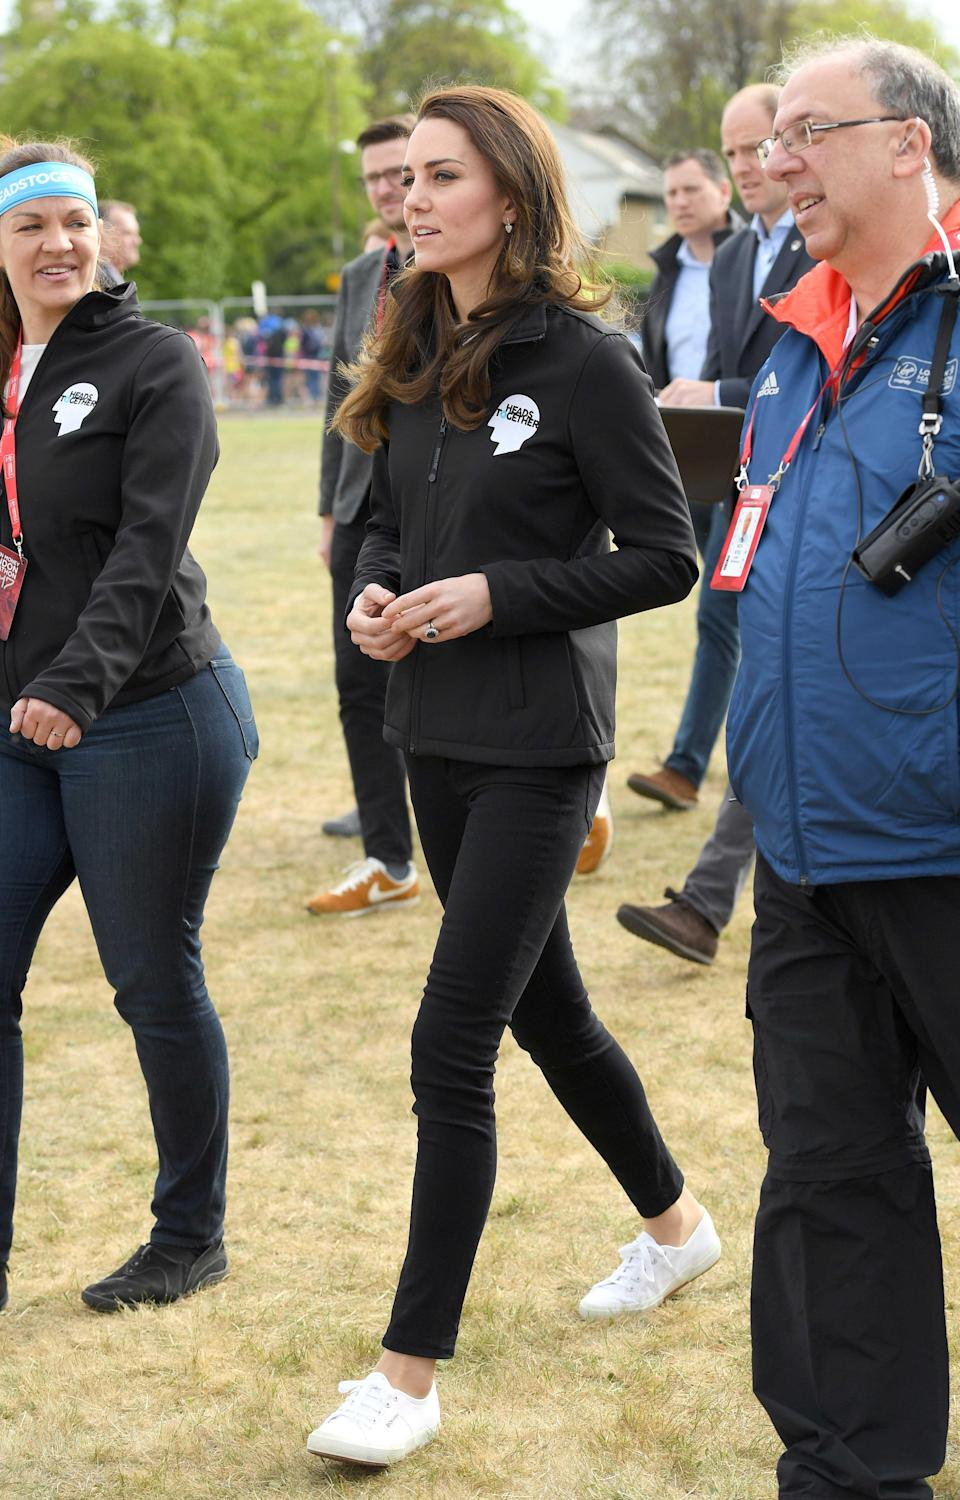 """<p><strong>When:</strong> April 23, 2017 <strong>Where:</strong> 2017 London Marathon <strong>Wearing:</strong> M.i.h. Drew top and Superga 2750 Cotu Classic sneakers <strong>Get the Look:</strong> Everlane The Heavyweight Tee, $45; <a href=""""http://www.gopjn.com/t/8-9711-131940-104709?sid=POROYALSKateSpringStyleMM&url=https%3A%2F%2Fwww.everlane.com%2Fproducts%2Fwomens-boatneck-tee-white-navy%3Fcollection%3Dwomens-tees"""" rel=""""nofollow noopener"""" target=""""_blank"""" data-ylk=""""slk:everlane.com"""" class=""""link rapid-noclick-resp"""">everlane.com</a> Daisy Street Relaxed Long Sleeve T-Shirt, $21; <a href=""""https://click.linksynergy.com/fs-bin/click?id=93xLBvPhAeE&subid=0&offerid=460292.1&type=10&tmpid=20904&RD_PARM1=http%3A%2F%2Fus.asos.com%2Fdaisy-street%2Fdaisy-street-relaxed-long-sleeve-t-shirt-in-breton-stripe%2Fprd%2F9543995%3Fclr%3Dnavyandwhite%2526SearchQuery%3Dbreton%2520top%2526gridcolumn%3D1%2526gridrow%3D2%2526gridsize%3D4%2526pge%3D1%2526pgesize%3D72%2526totalstyles%3D13&u1=POROYALSKateSpringStyleMM"""" rel=""""nofollow noopener"""" target=""""_blank"""" data-ylk=""""slk:asos.com"""" class=""""link rapid-noclick-resp"""">asos.com</a> Superga 2750 Cotu Classic Sneaker, $65 - $99; <a href=""""https://click.linksynergy.com/fs-bin/click?id=93xLBvPhAeE&subid=0&offerid=390098.1&type=10&tmpid=8156&RD_PARM1=https%253A%252F%252Fshop.nordstrom.com%252Fs%252Fsuperga-cotu-sneaker-women%252F3284914%253Fcm_mmc%253Dgoogle-_-productads-_-Women%25253AShoes%25253ASneaker-_-540107%2526rkg_id%253Dh-0b41d5d9369633e4b8a78902d5c7e0b0_t-1492995615%2526adpos%253D1o3%2526creative%253D145503081290%2526device%253Dc%2526network%253Dg%2526gclid%253DCK_enoryu9MCFVlWDQodFa0Bug&u1=POROYALSCopyKateMM"""" rel=""""nofollow noopener"""" target=""""_blank"""" data-ylk=""""slk:nordstrom.com"""" class=""""link rapid-noclick-resp"""">nordstrom.com</a></p>"""